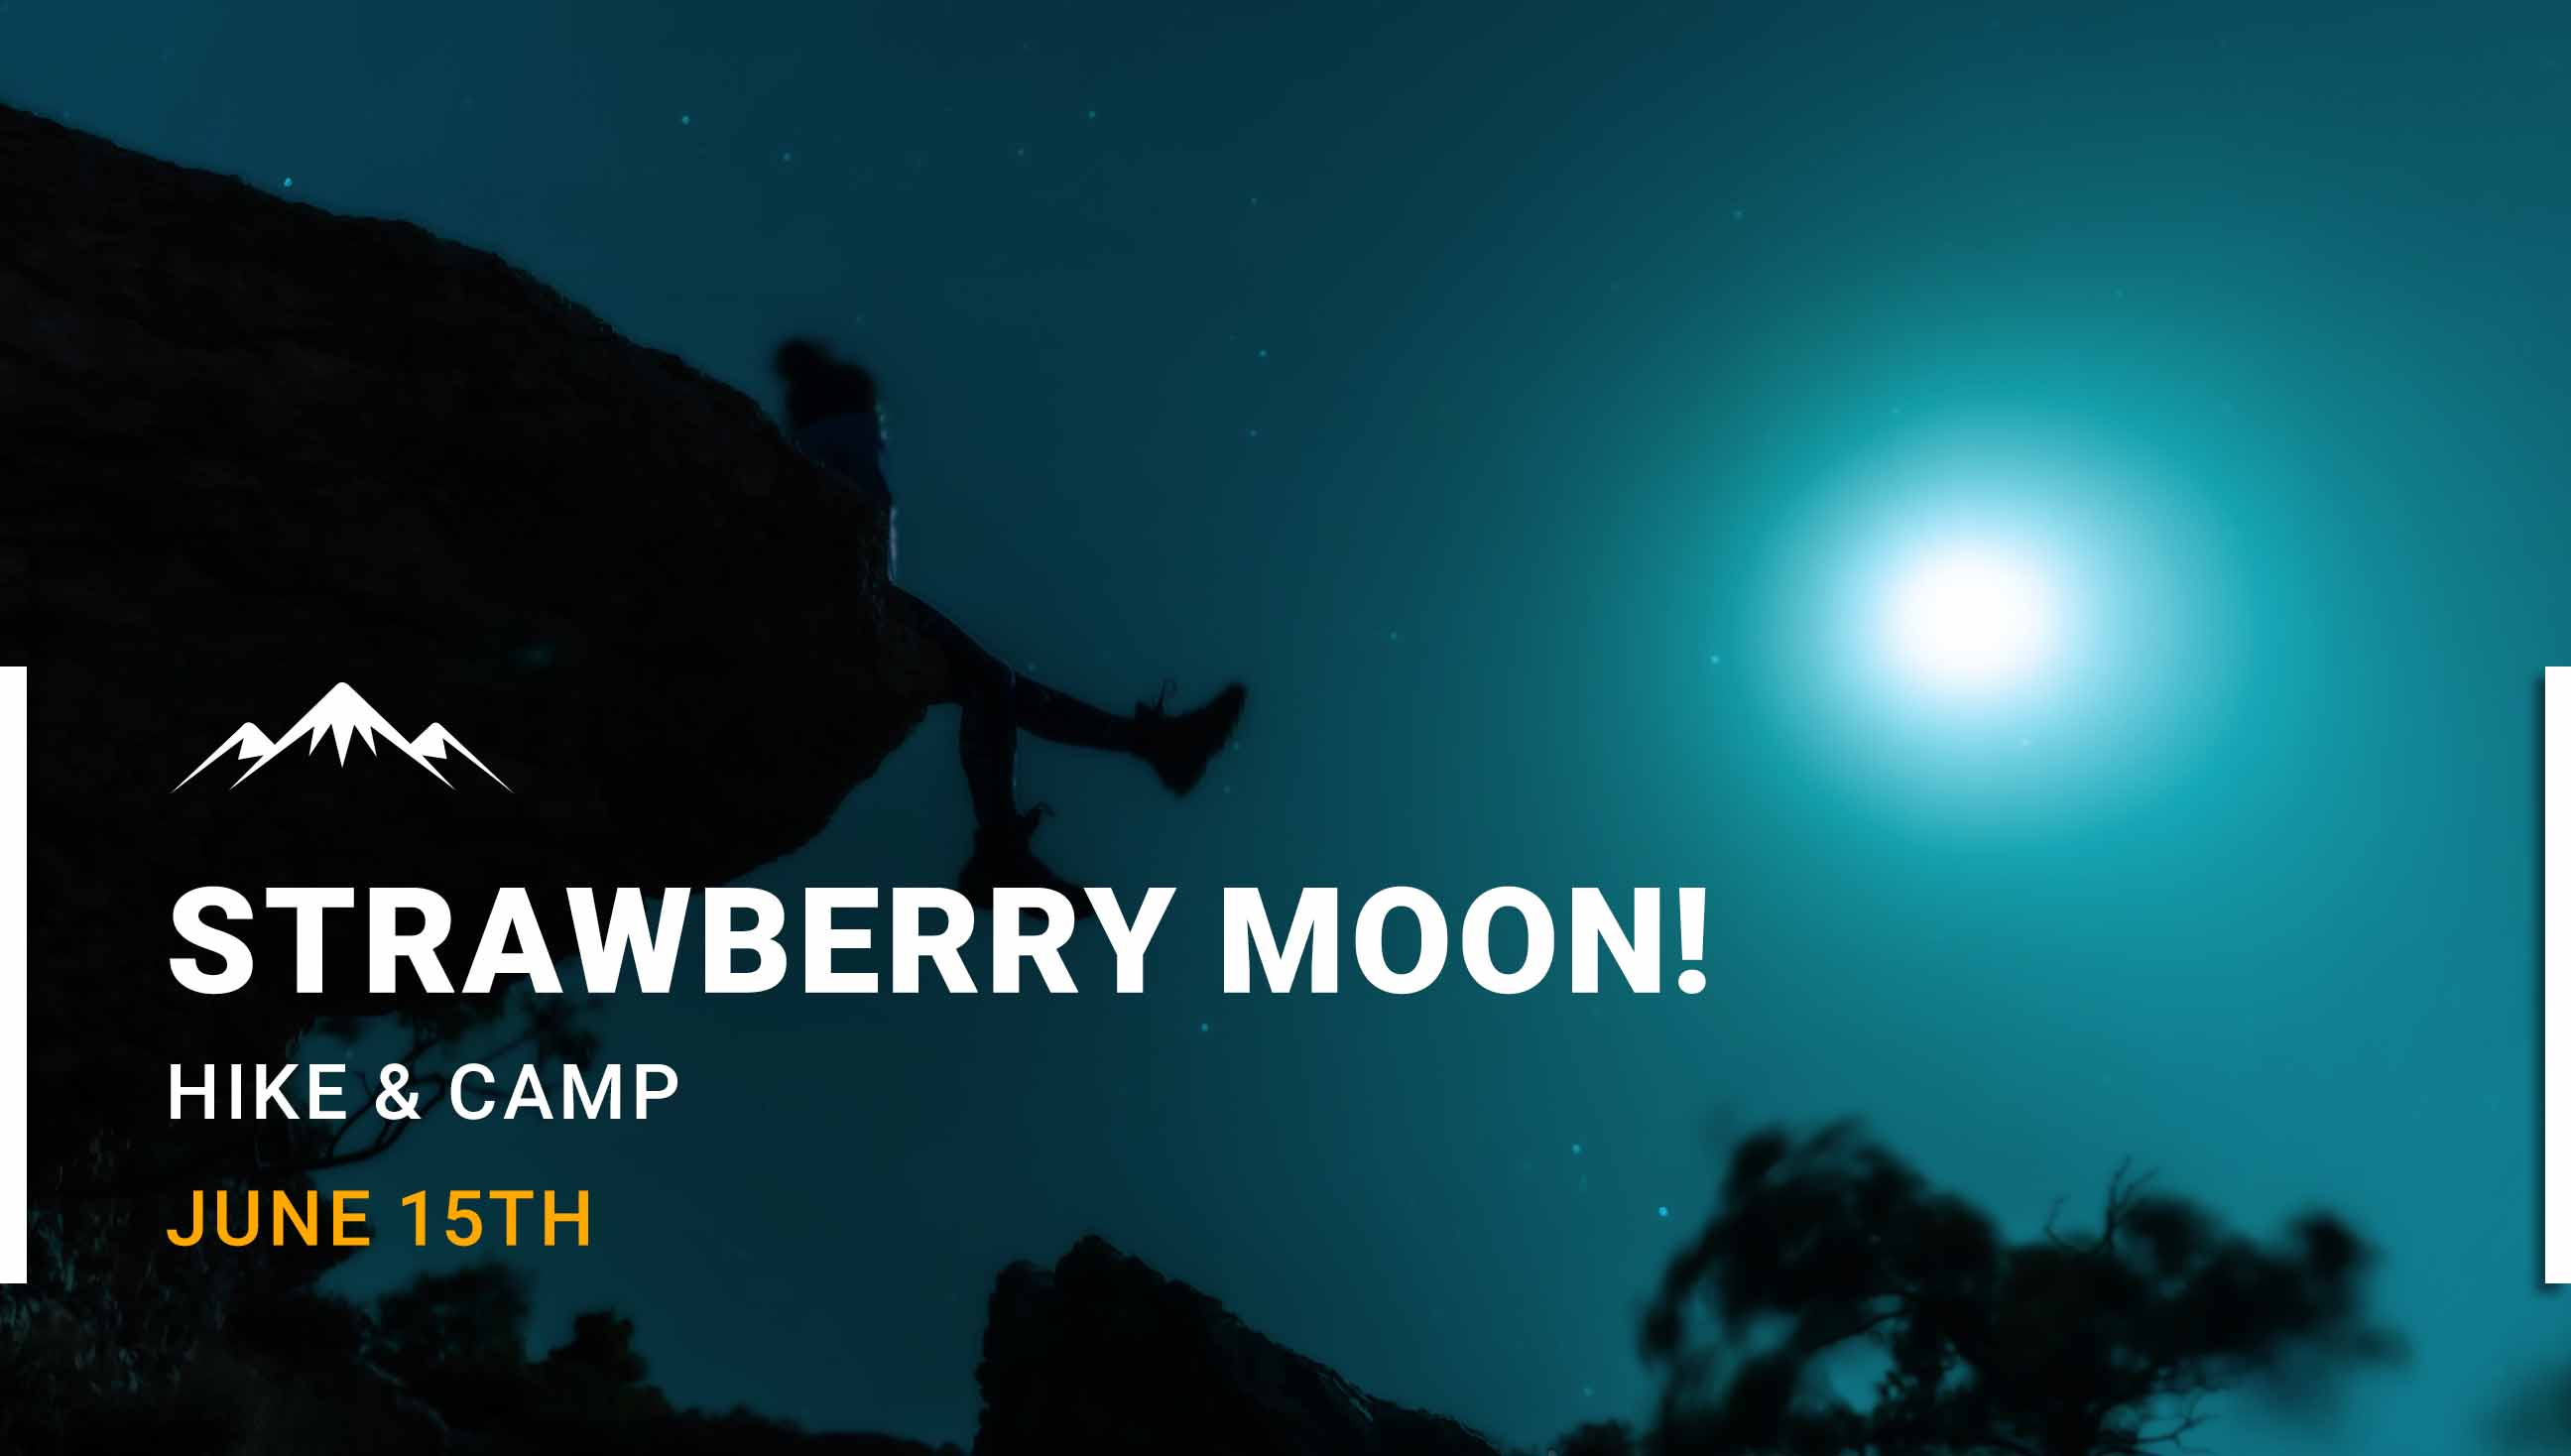 Strawberry Moon - Hike & Camp